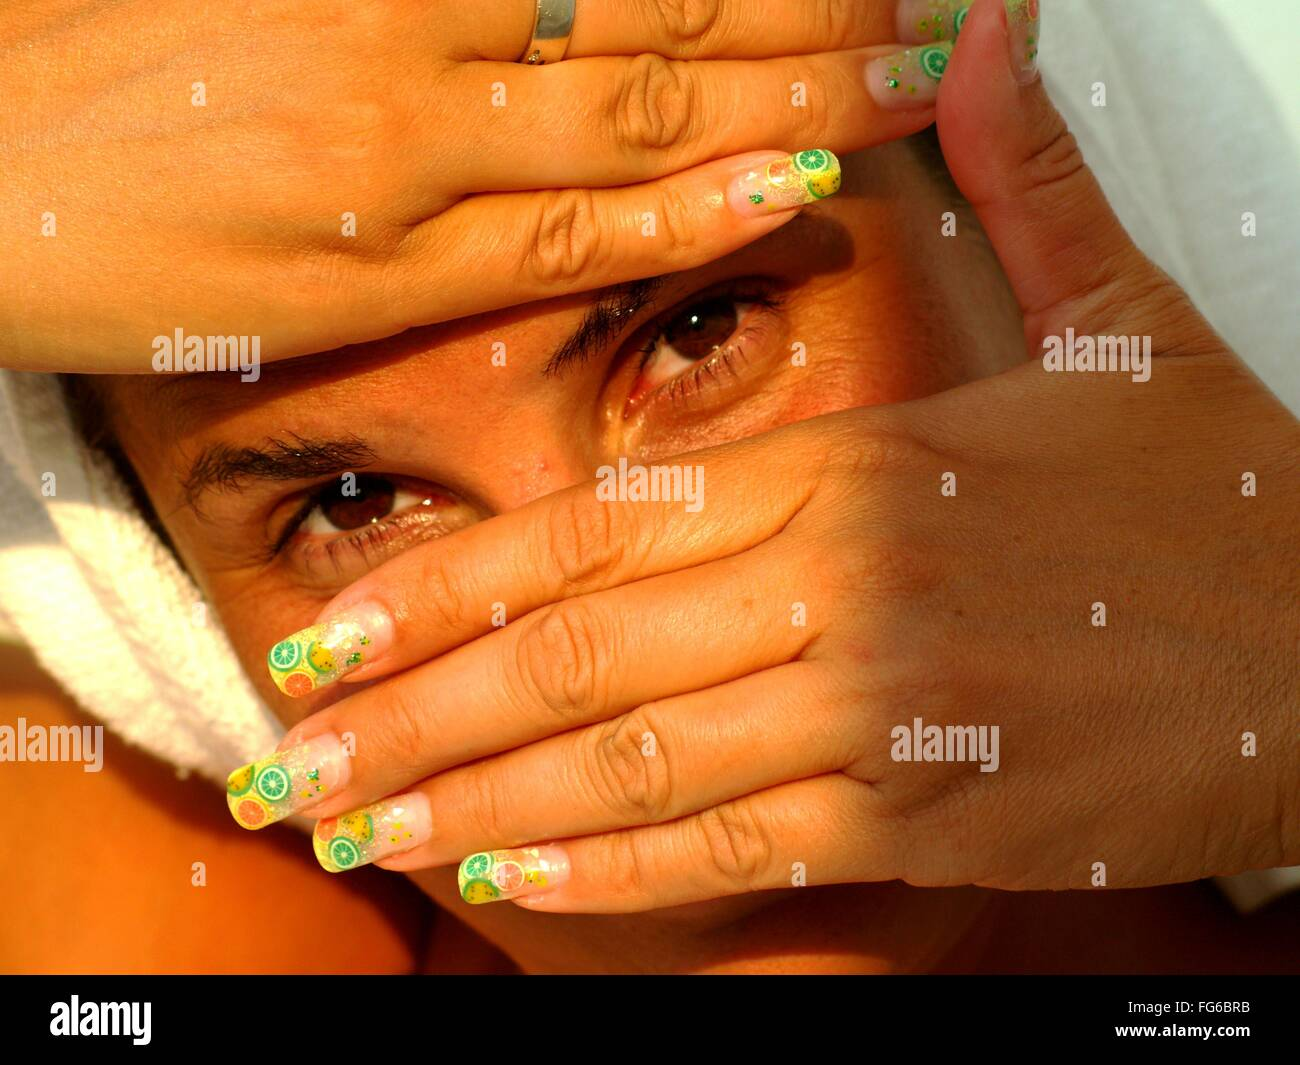 Portrait Of Mid Adult Woman With Nail Art Stock Photo 96027327 Alamy